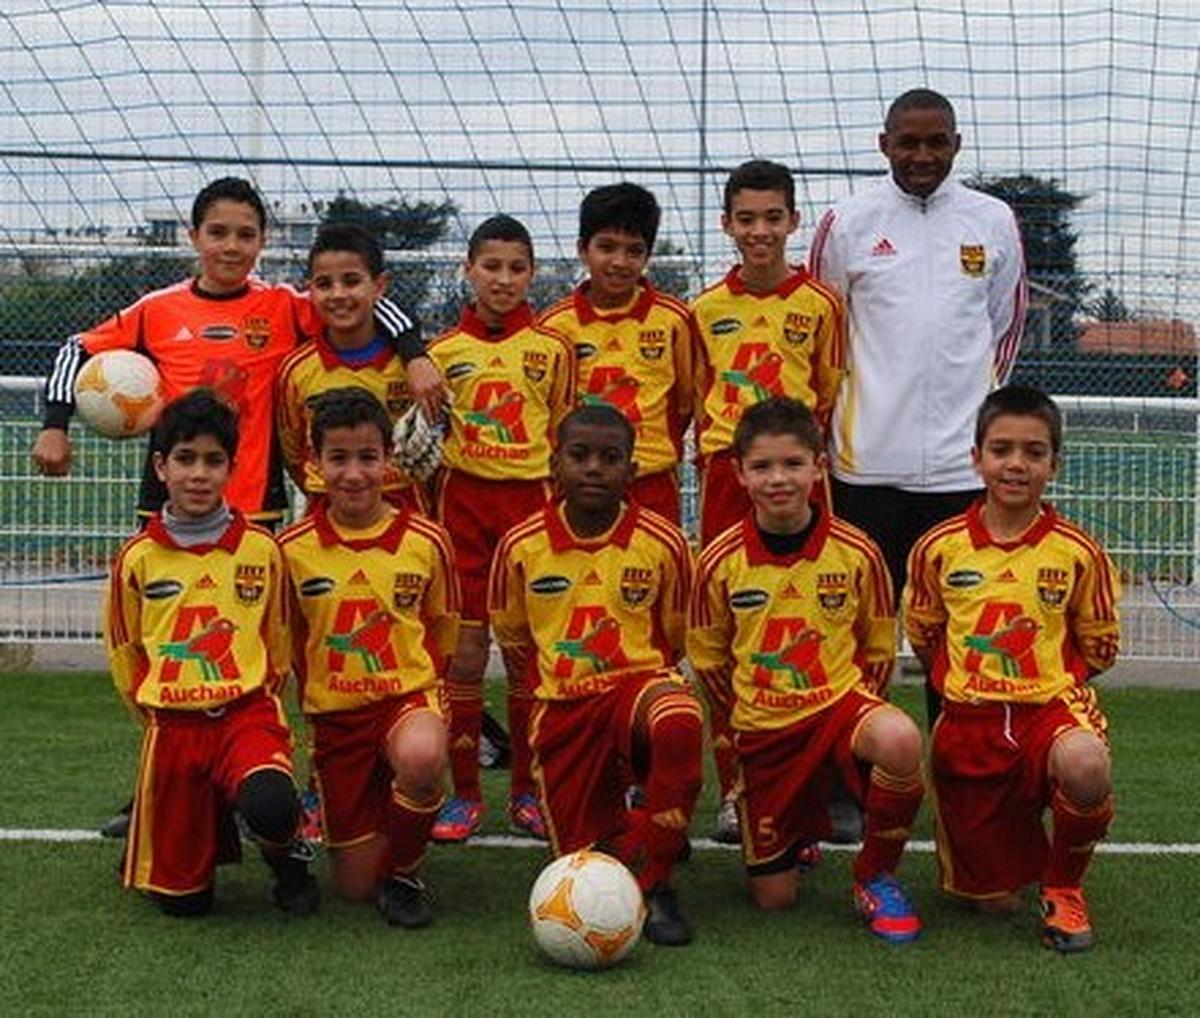 AS ST PRIEST U11